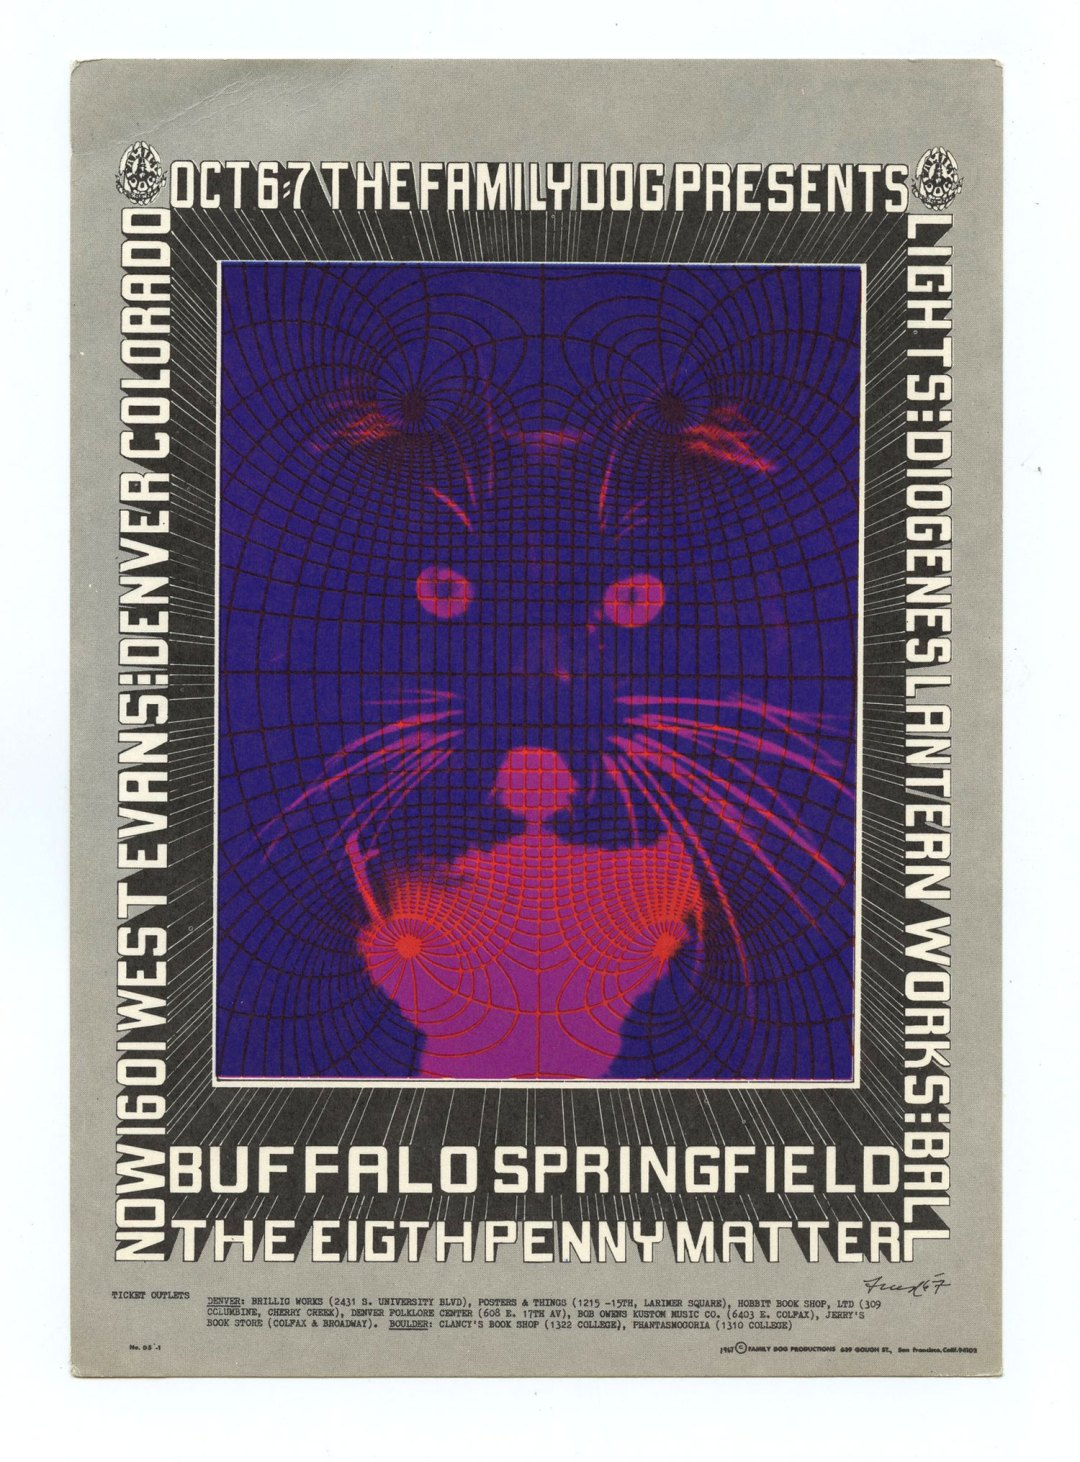 Family Dog Denver  5 Postcard Kitty 1967 Oct 6 Buffalo Springfield Eighth Penny Matter